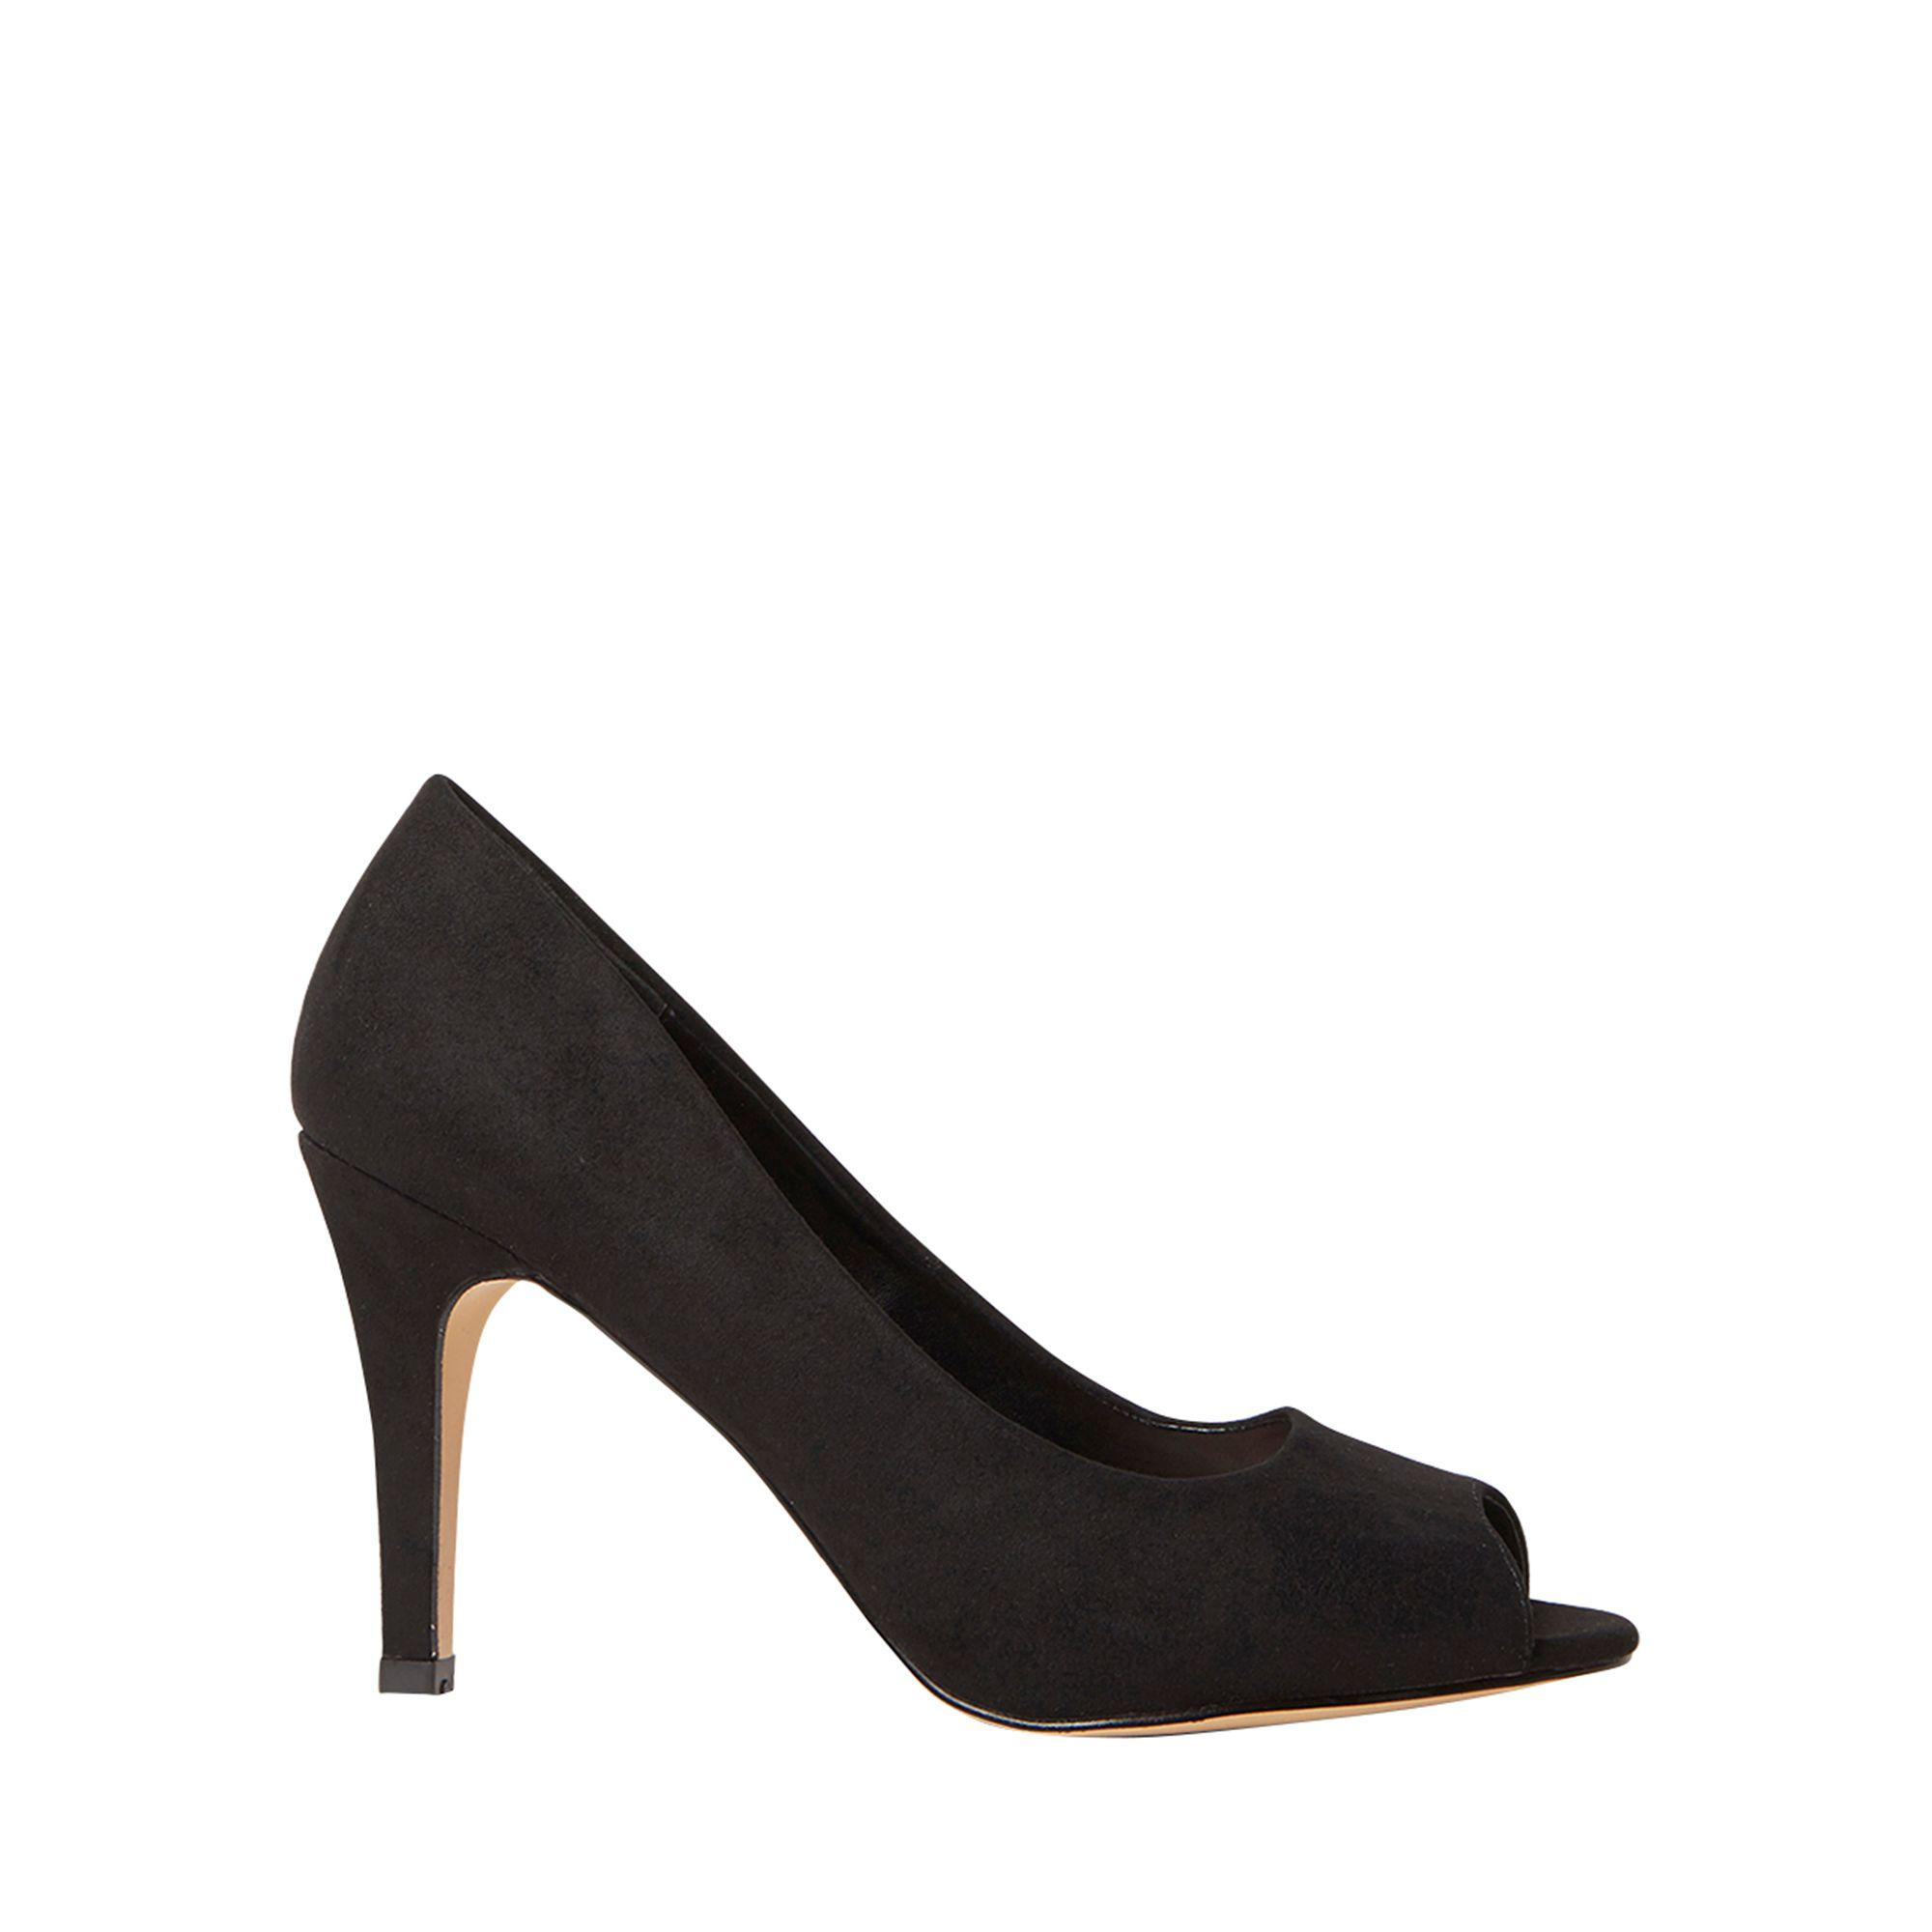 fee70be8935 Dorothy Perkins Wide Fit Black Clover Court Shoes in Black - Lyst